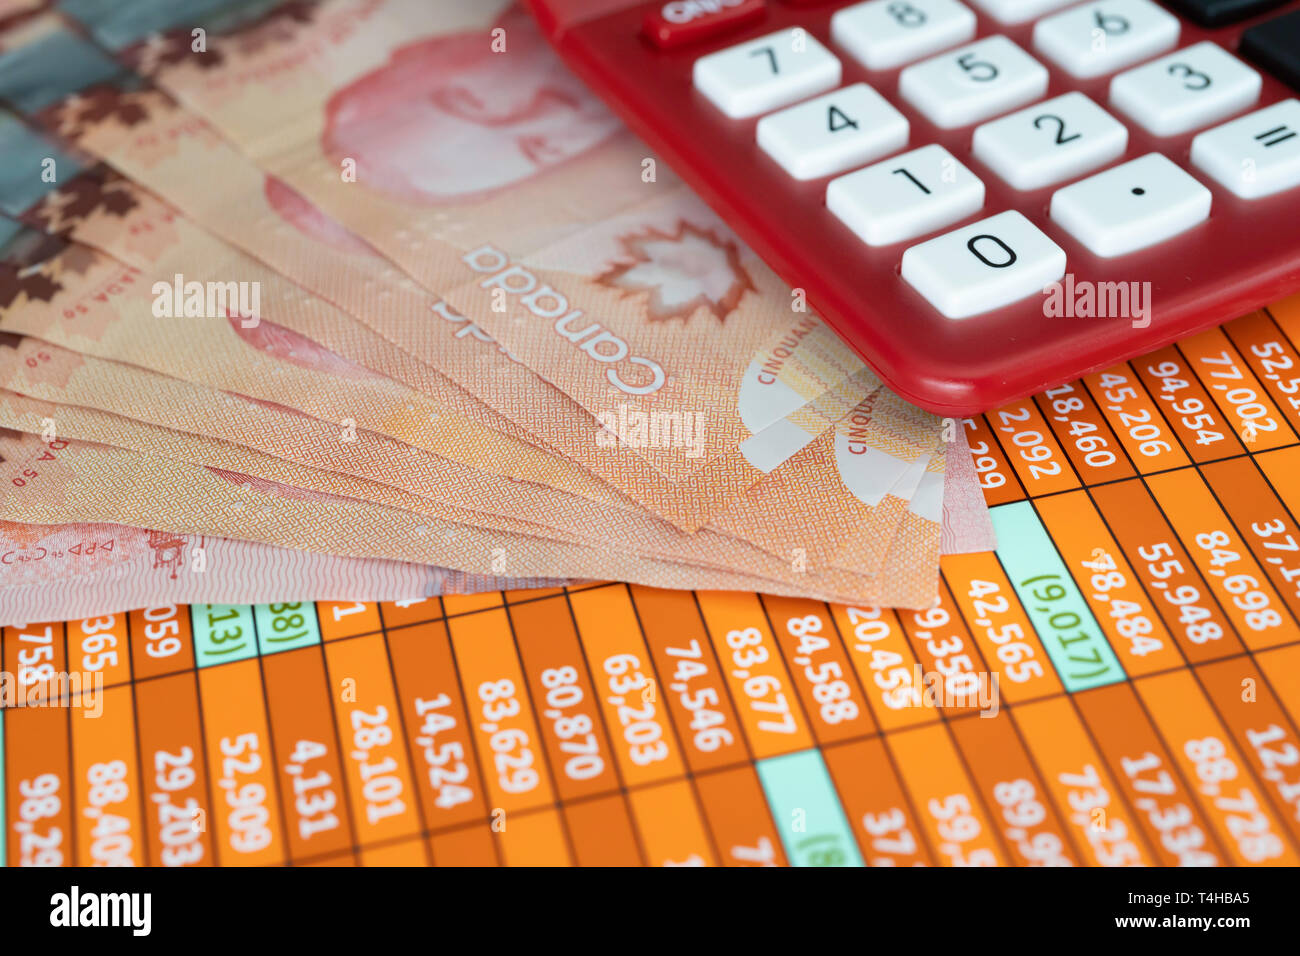 Canadian Dollar Notes on spreadsheet with Calculator - Stock Image